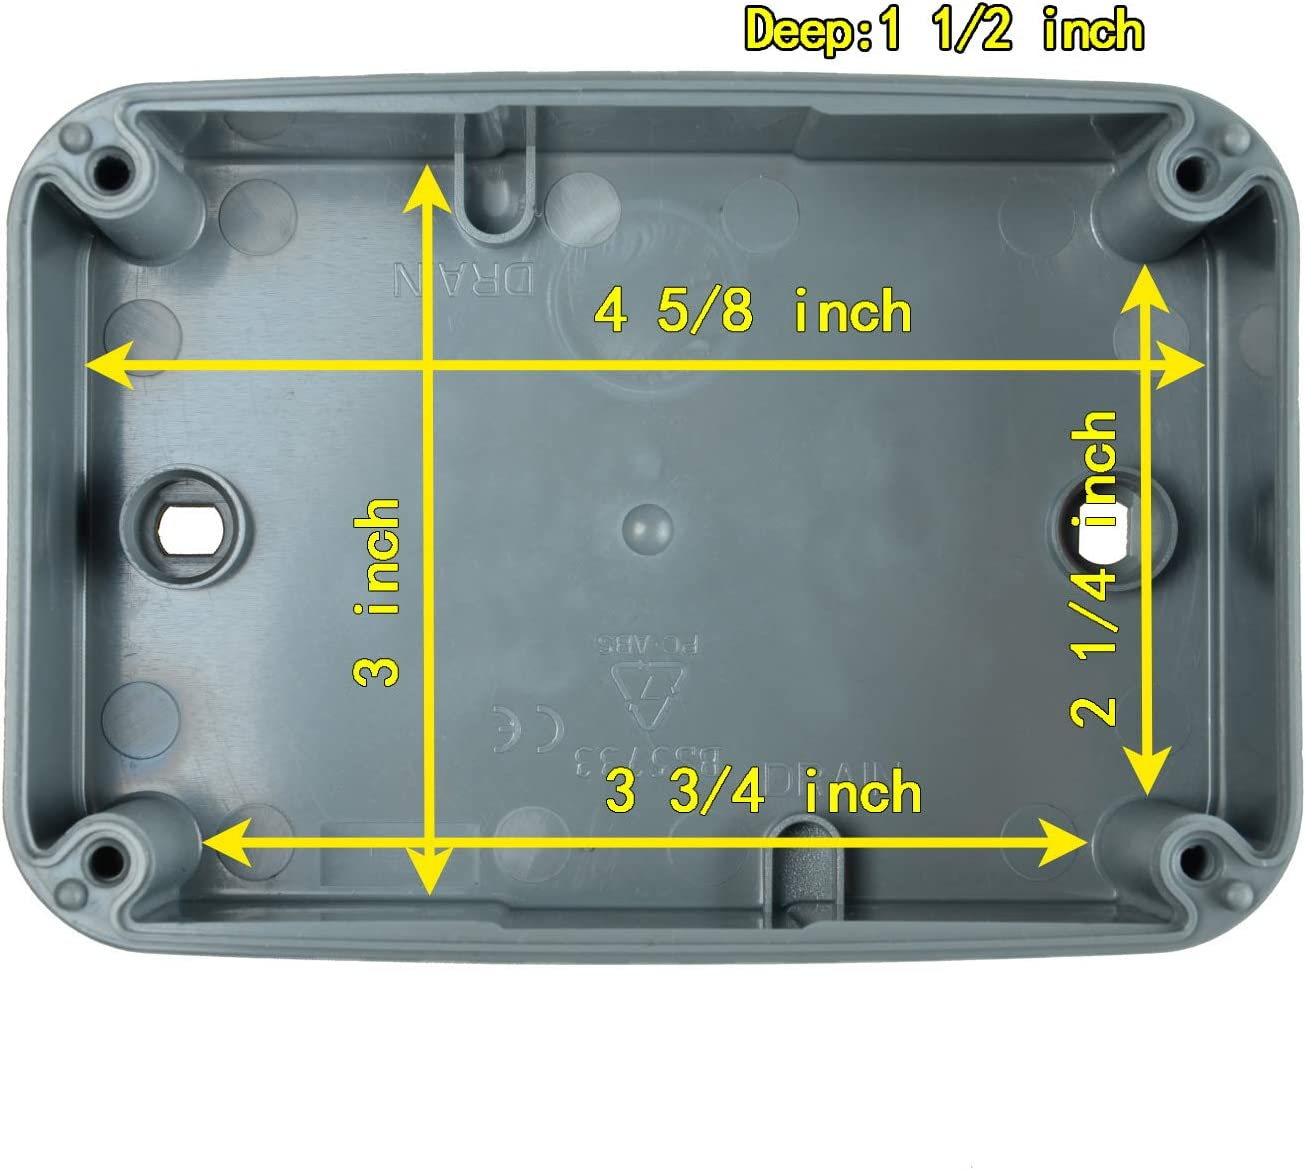 SuperInk 5 Pack Dustproof Electrical Junction Box Connector 9-Pole Waterproof Enclosure Case fit 20mm Cable Gland for Outdoor Use 125x86x62mm IP66 Rated